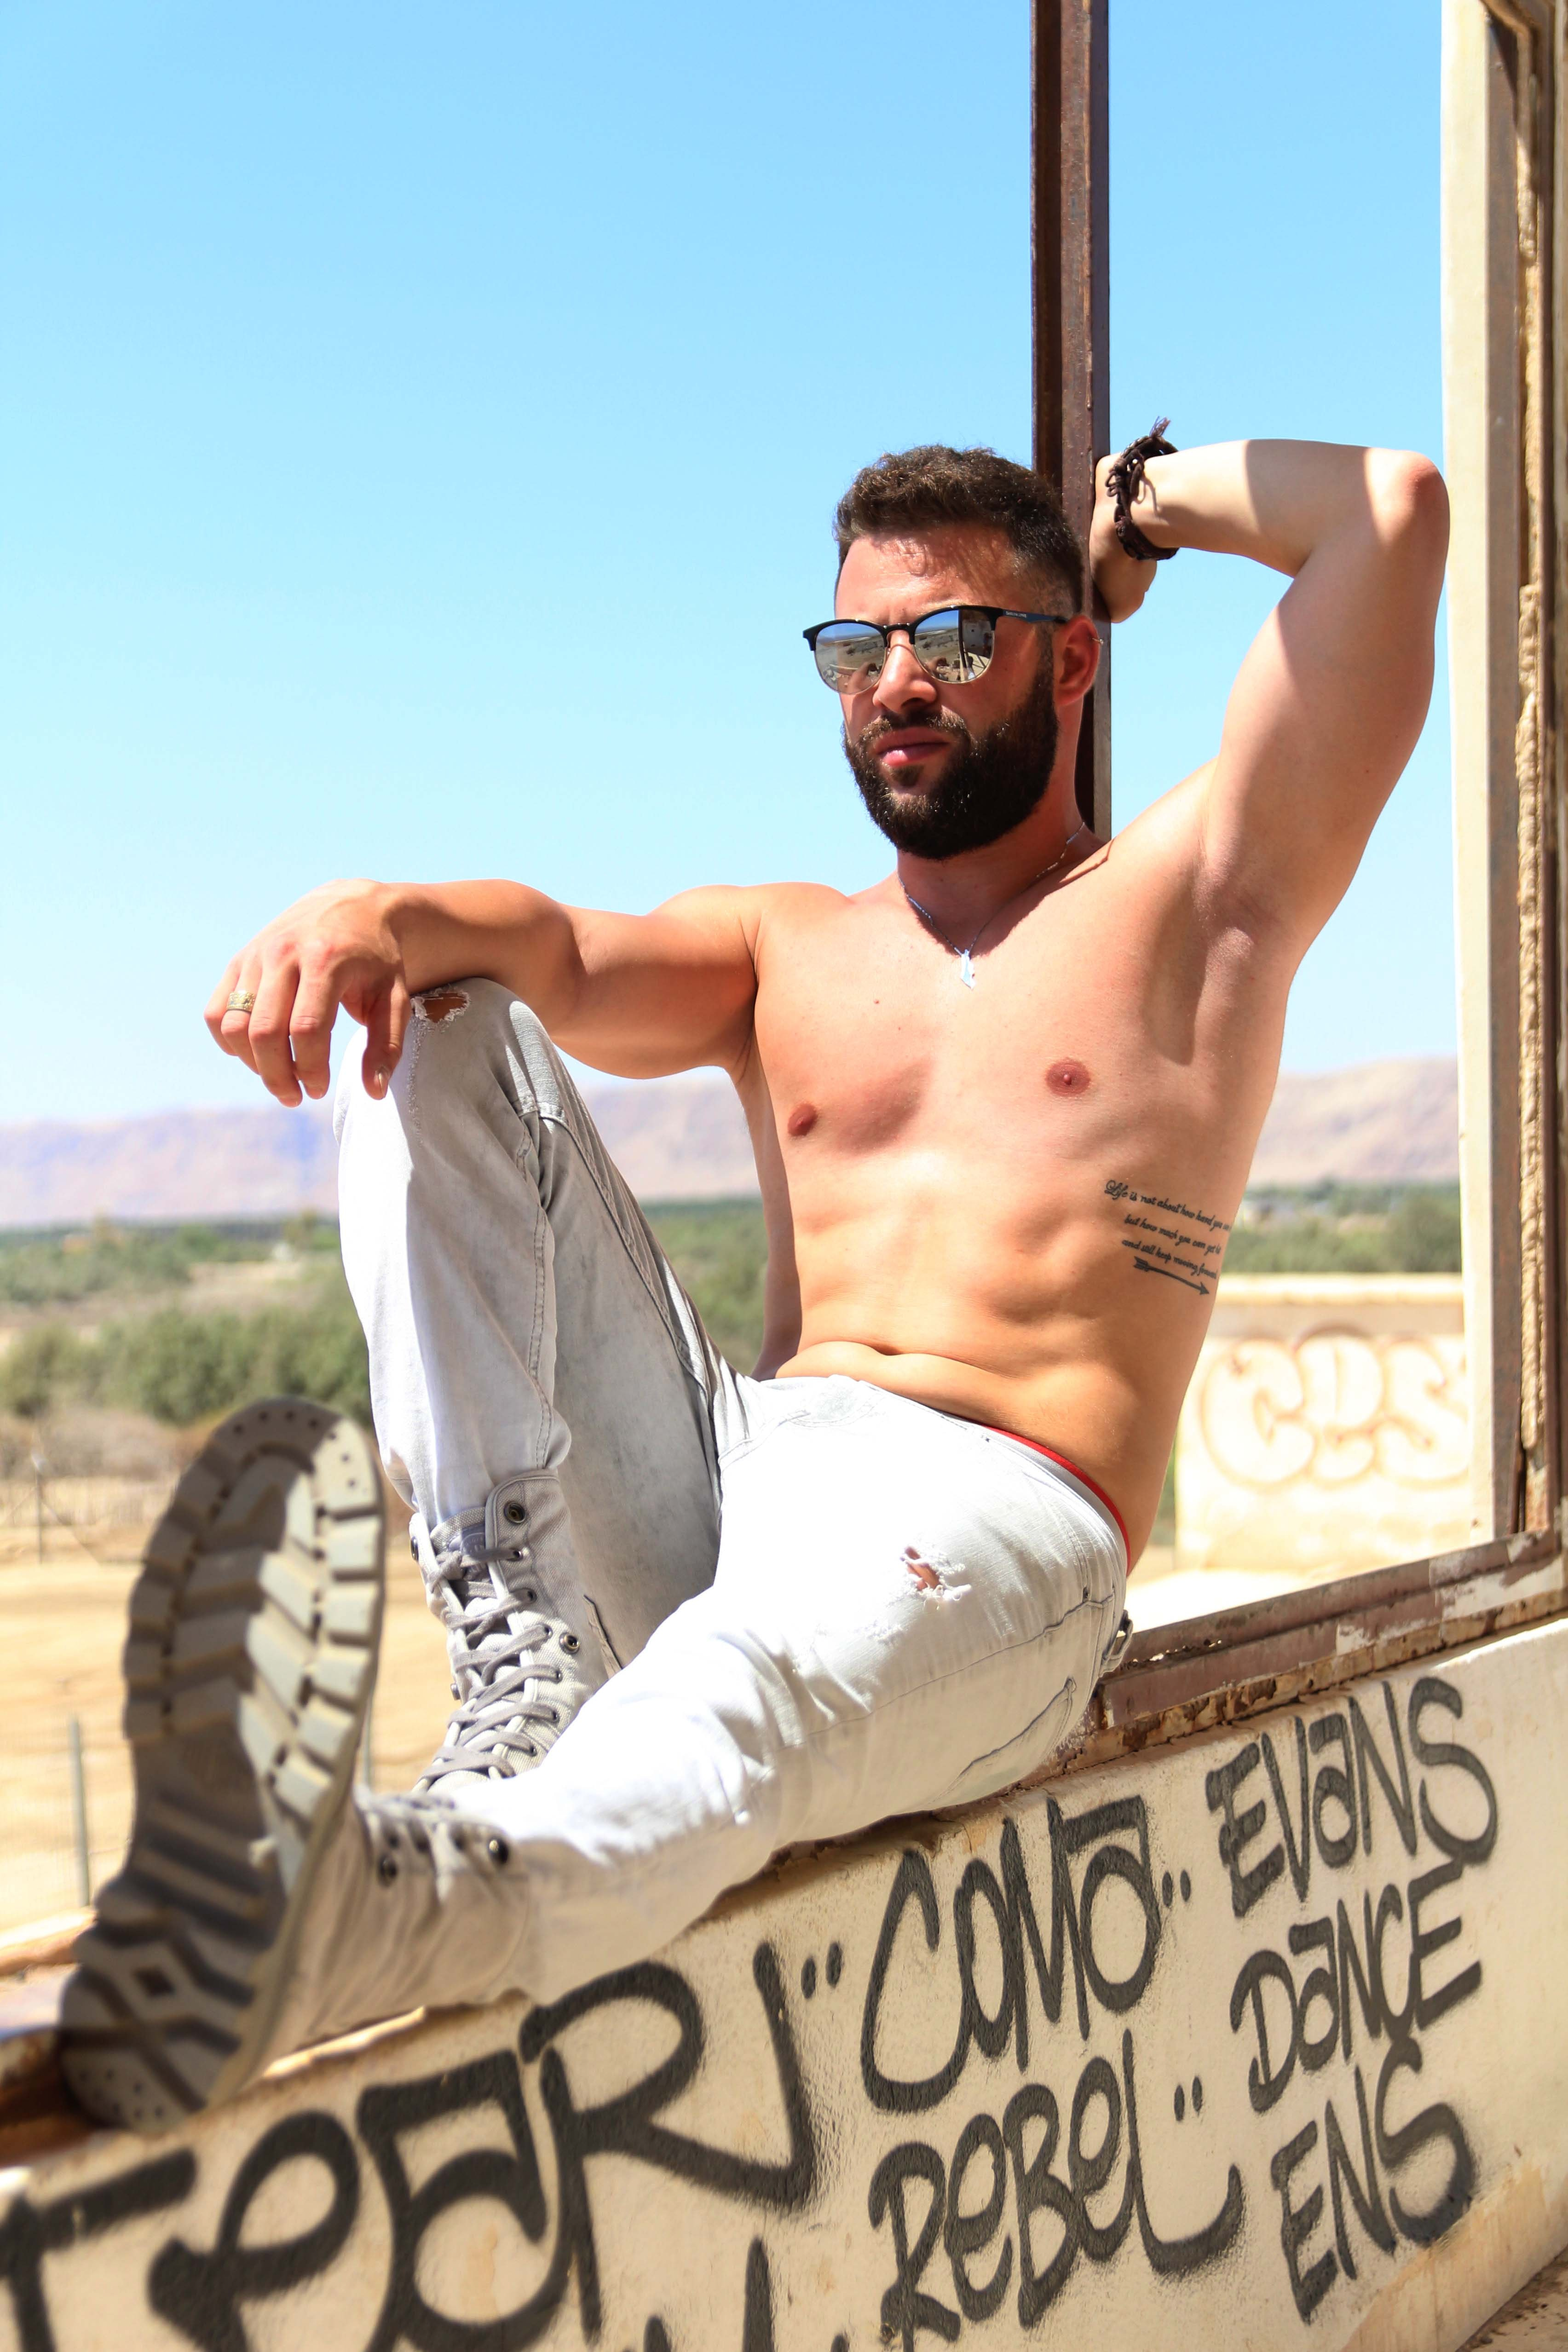 A fit shirtless man poses on a graffitied window frame outdoors by the Dead Sea